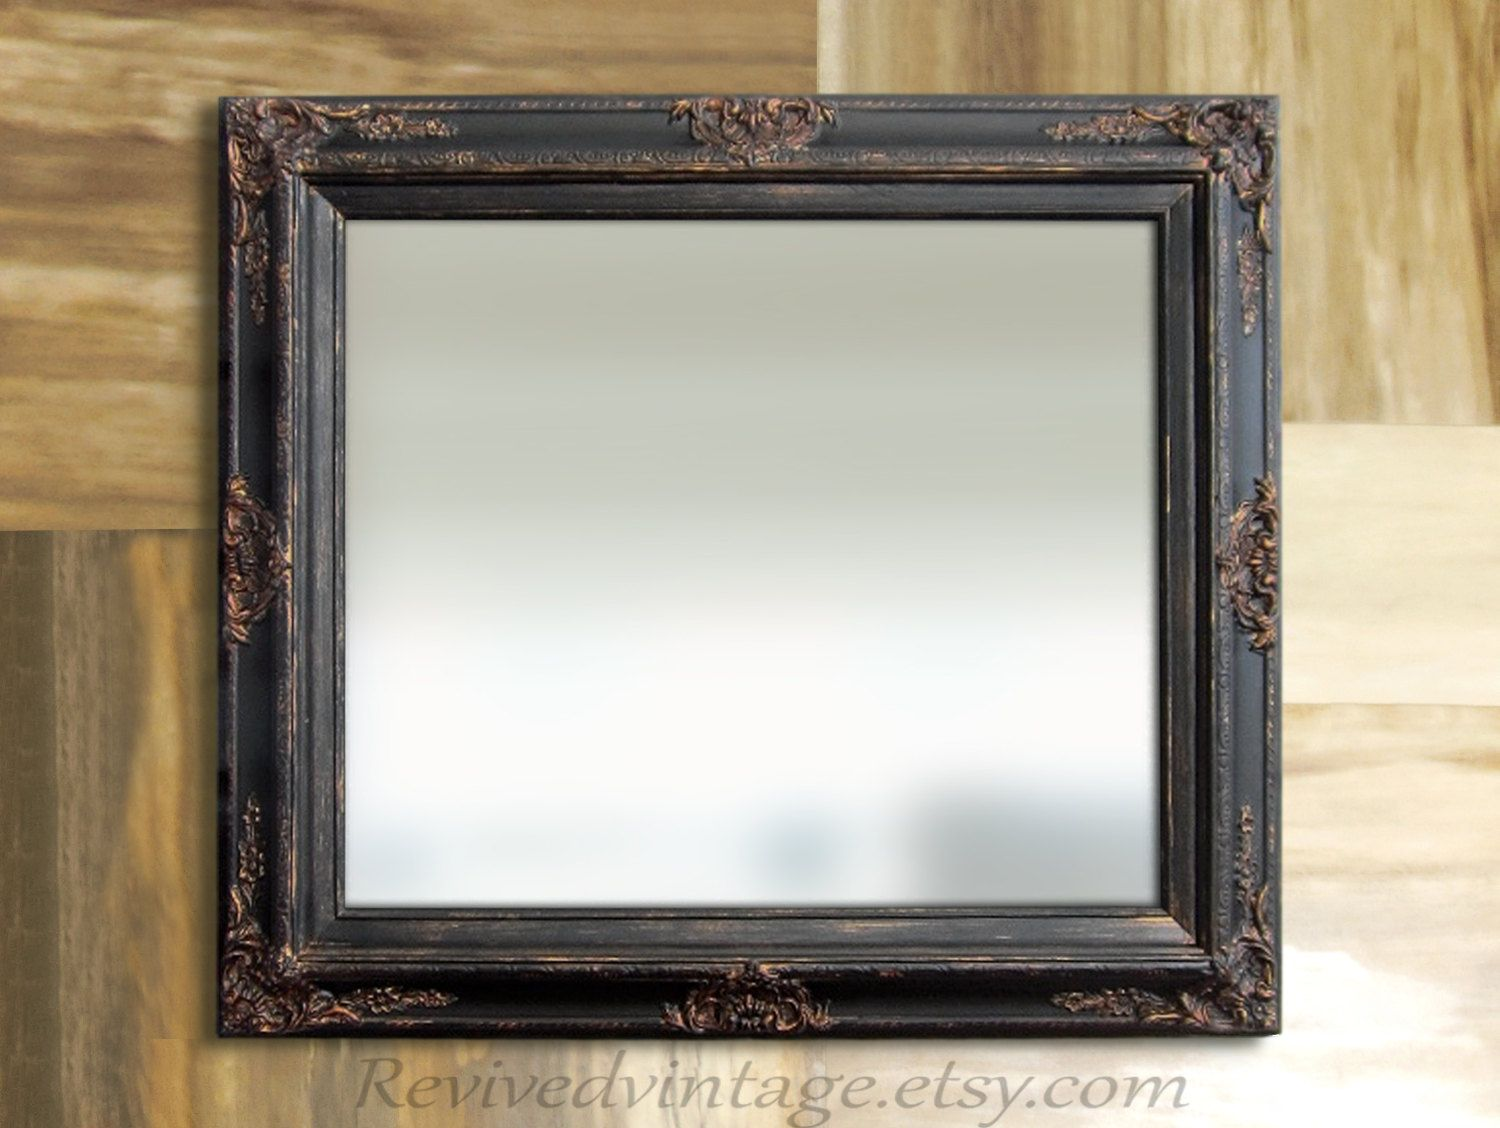 BLACK BATHROOM MIRROR For Sale Baroque Decorative Ornate ...